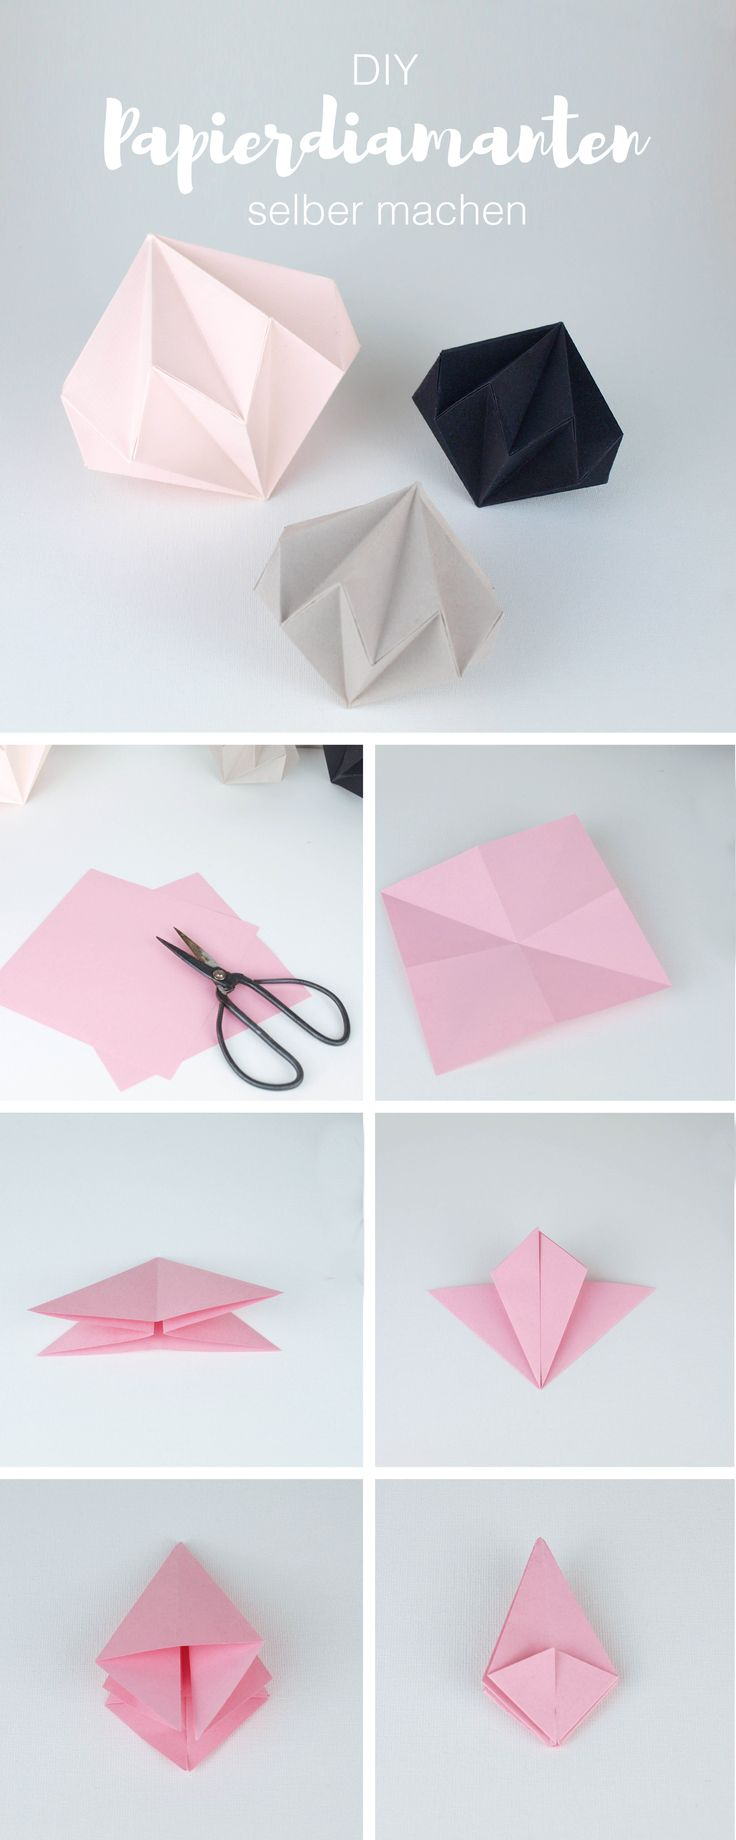 DIY decoration: Make paper diamonds yourself with simple folding instructions